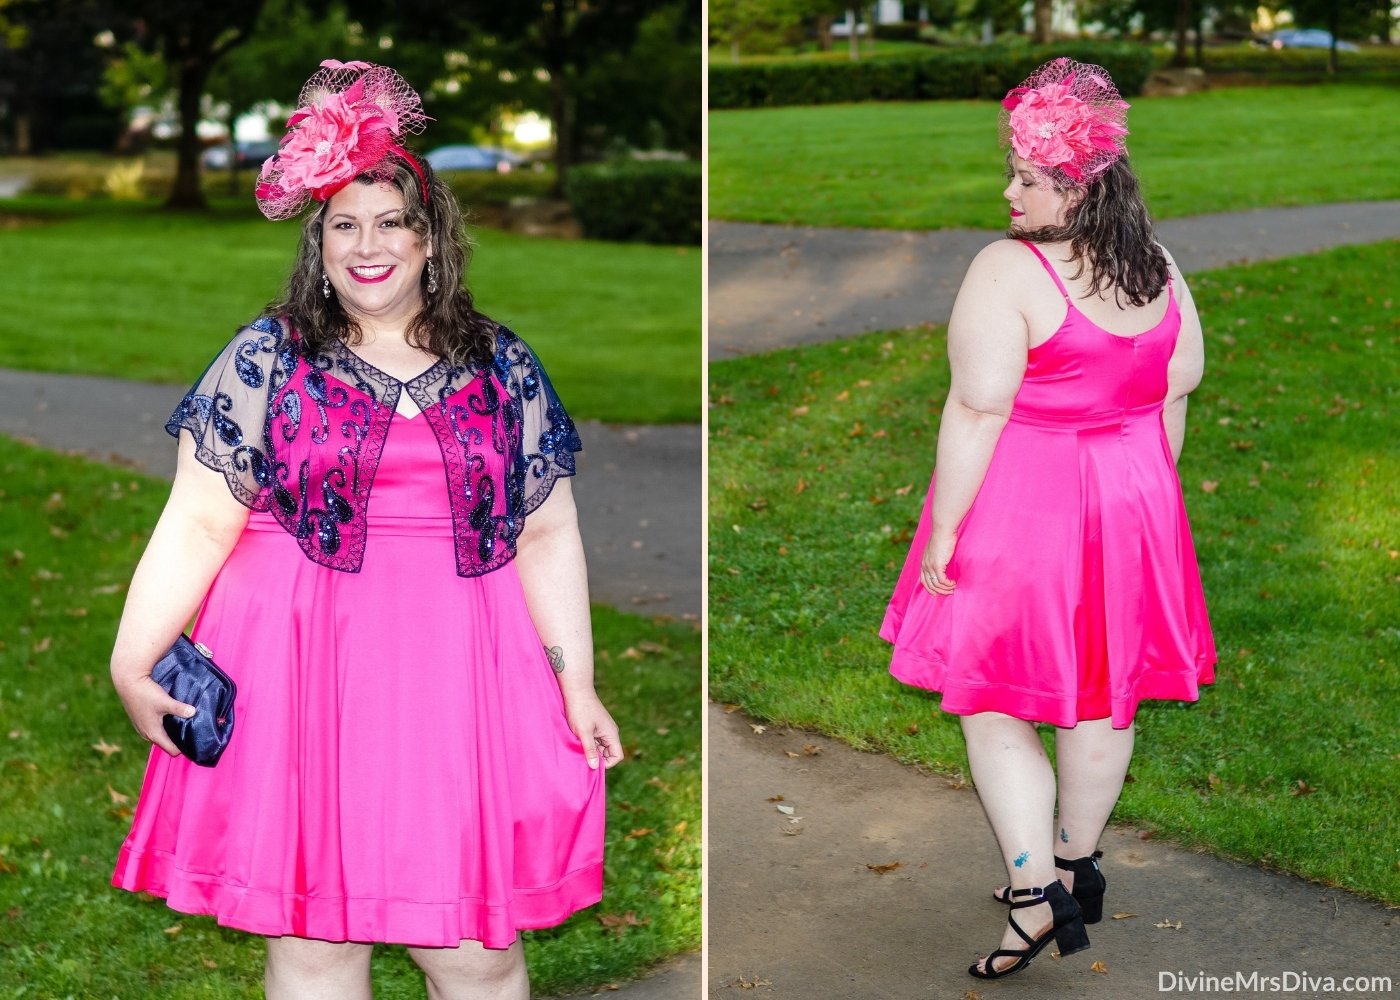 Reviewing the Rachel Alexandria by Tenth Street Hats! – DivineMrsDiva.com #psblogger #plussize #styleblogger #plussizeblogger #plussizefashion #psootd #ootd #plussizeclothing #outfit #style #40style #40plusblogger #PartyStyle #TenthStreetHats